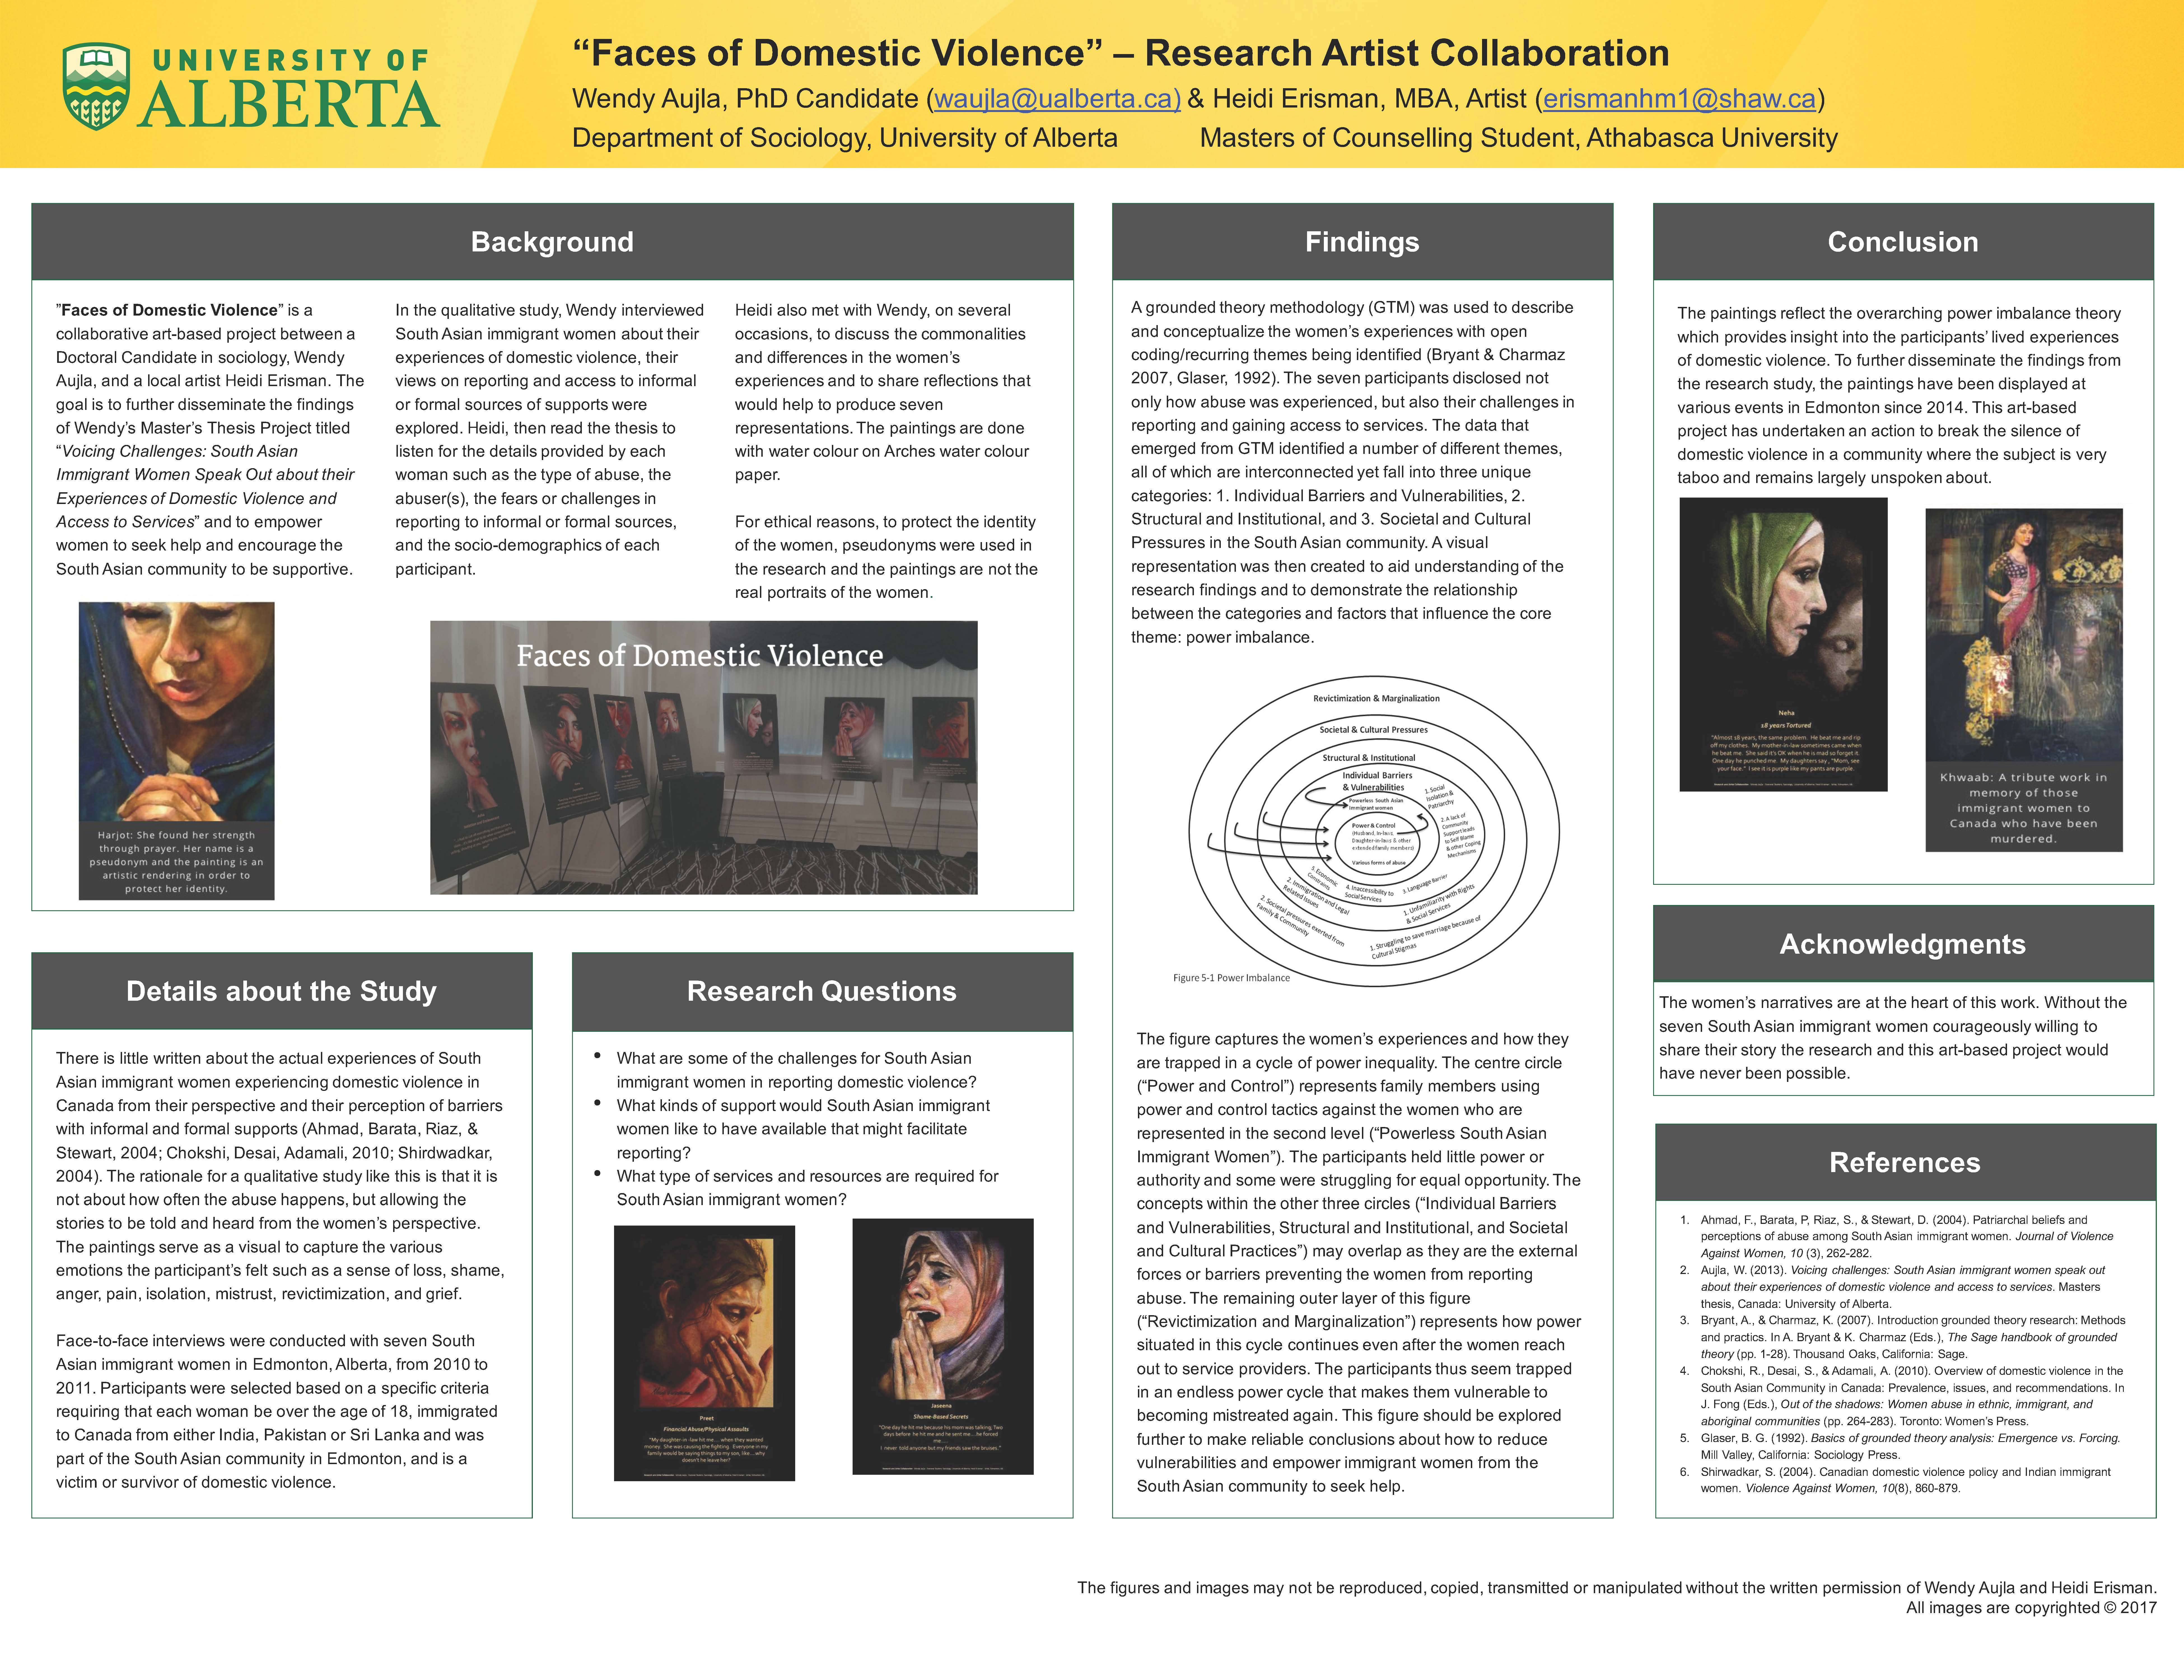 """Faces of Domestic Violence"" – Research Artist Collaboration Poster"